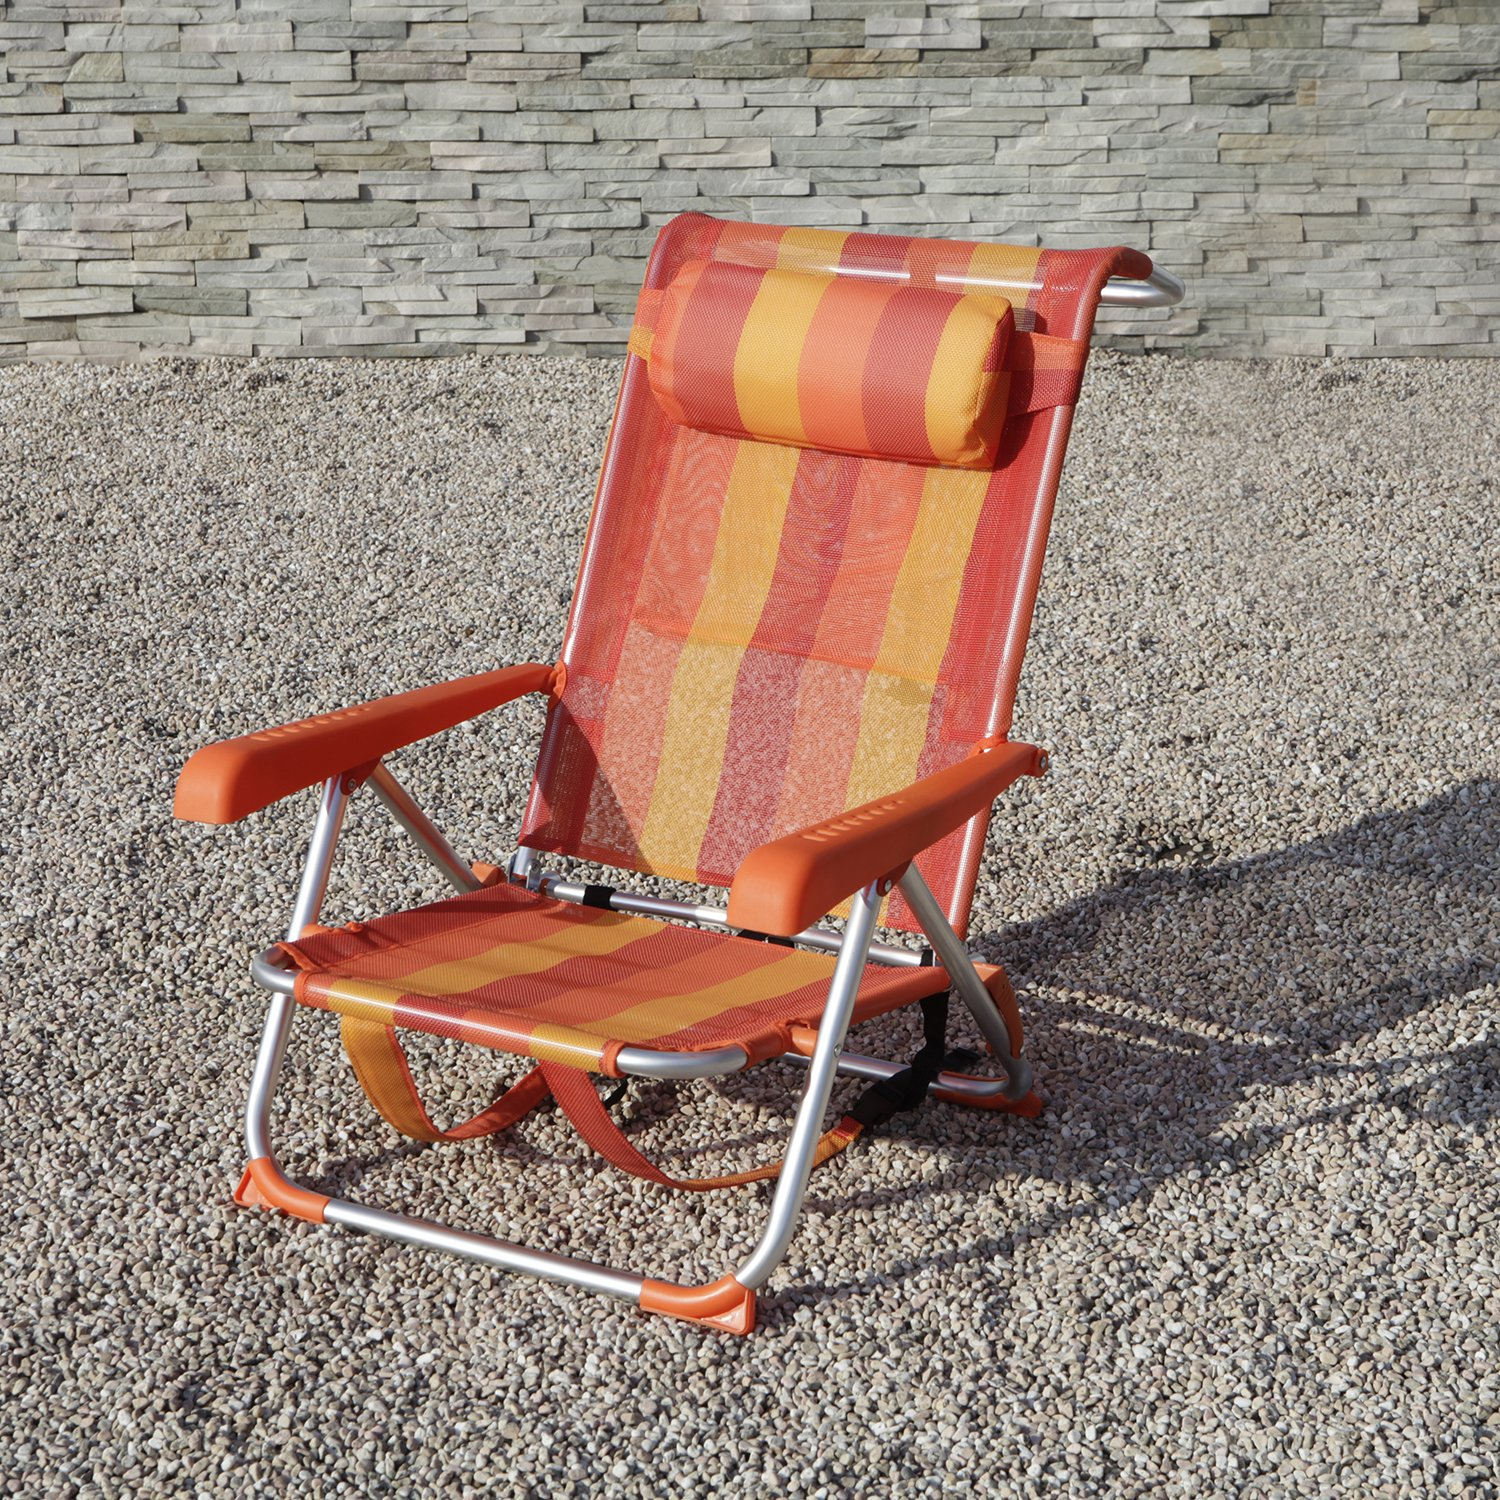 Cheap Vintage Beach Chair, find Vintage Beach Chair deals on ...